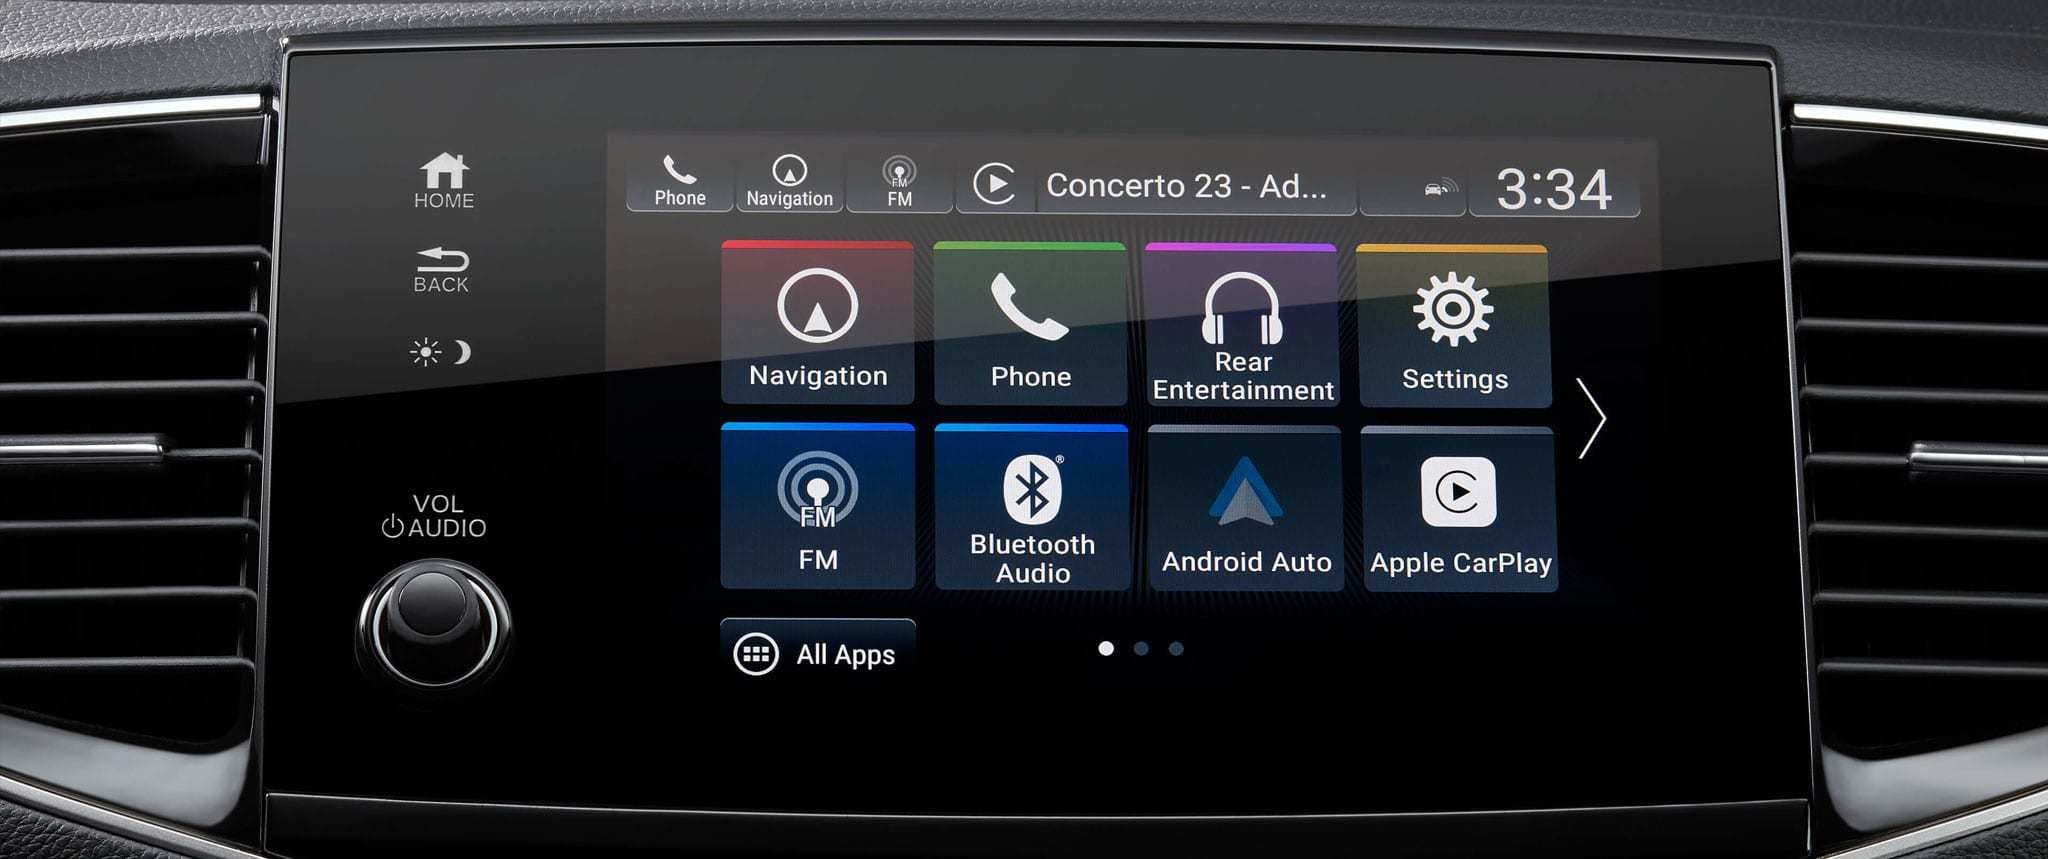 Apple CarPlay and Android Auto on the new Honda Pilot